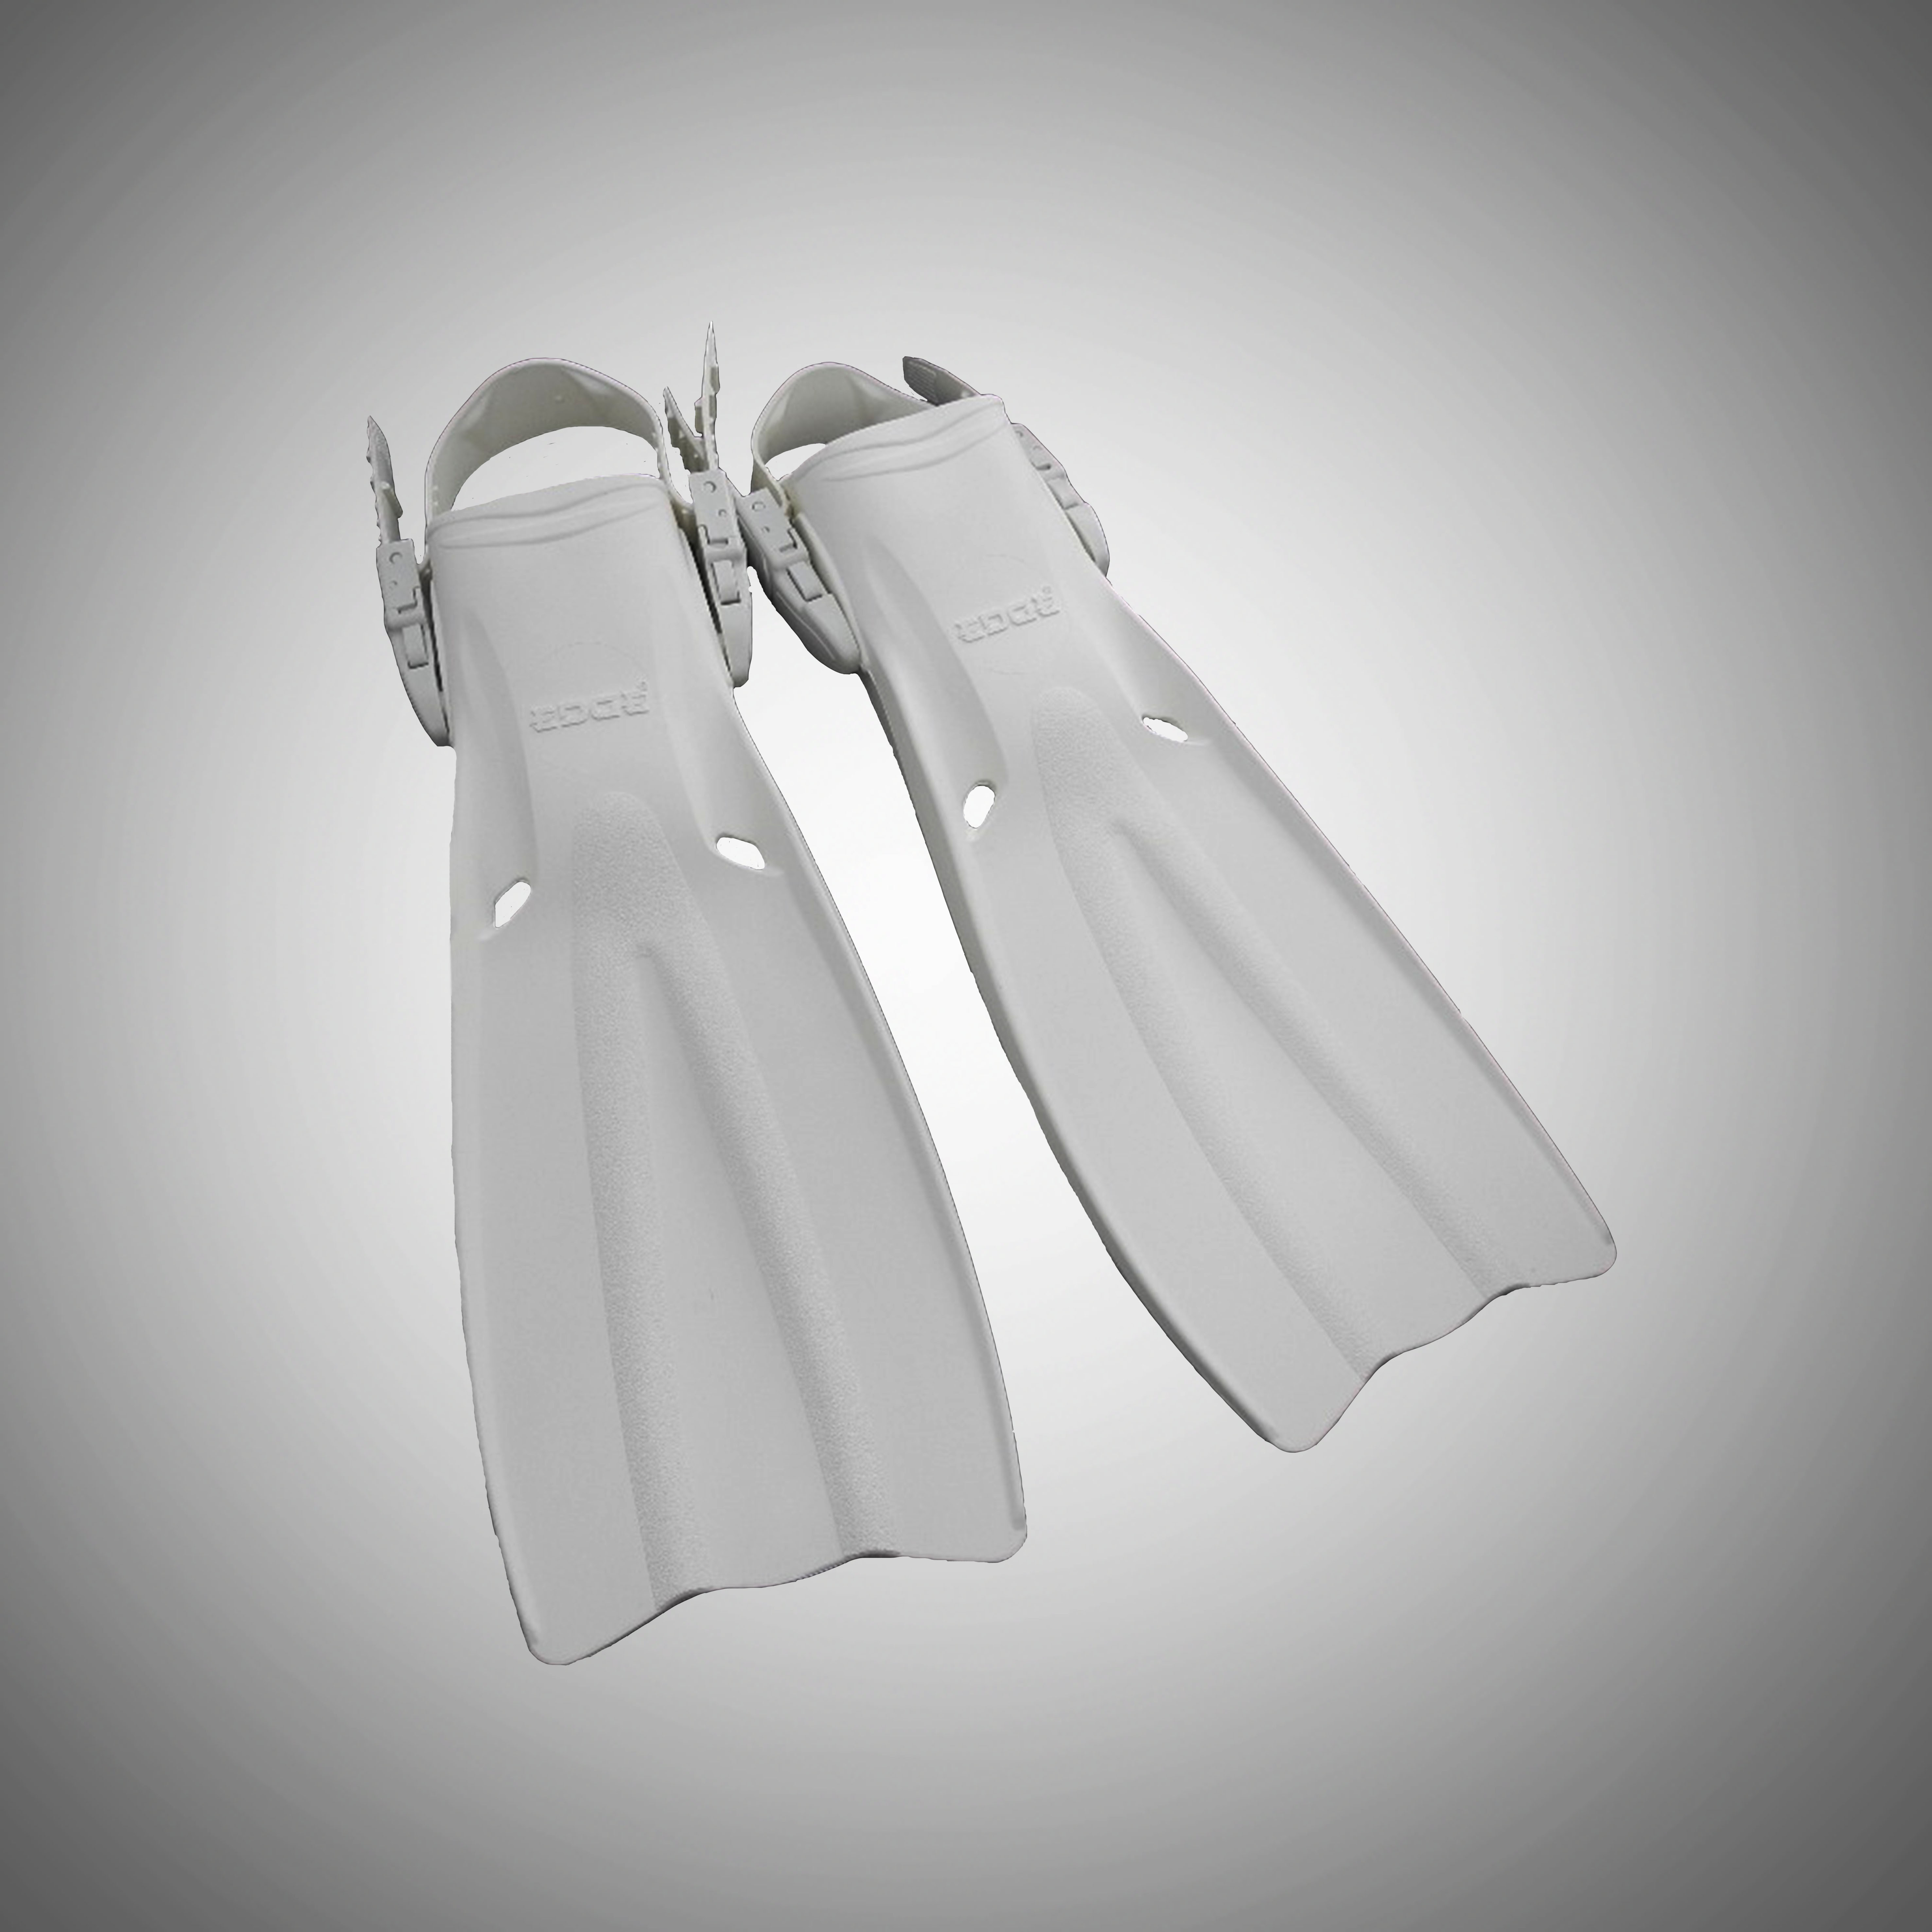 USD 107.50] American EDGE diving all white flippers quick release ...